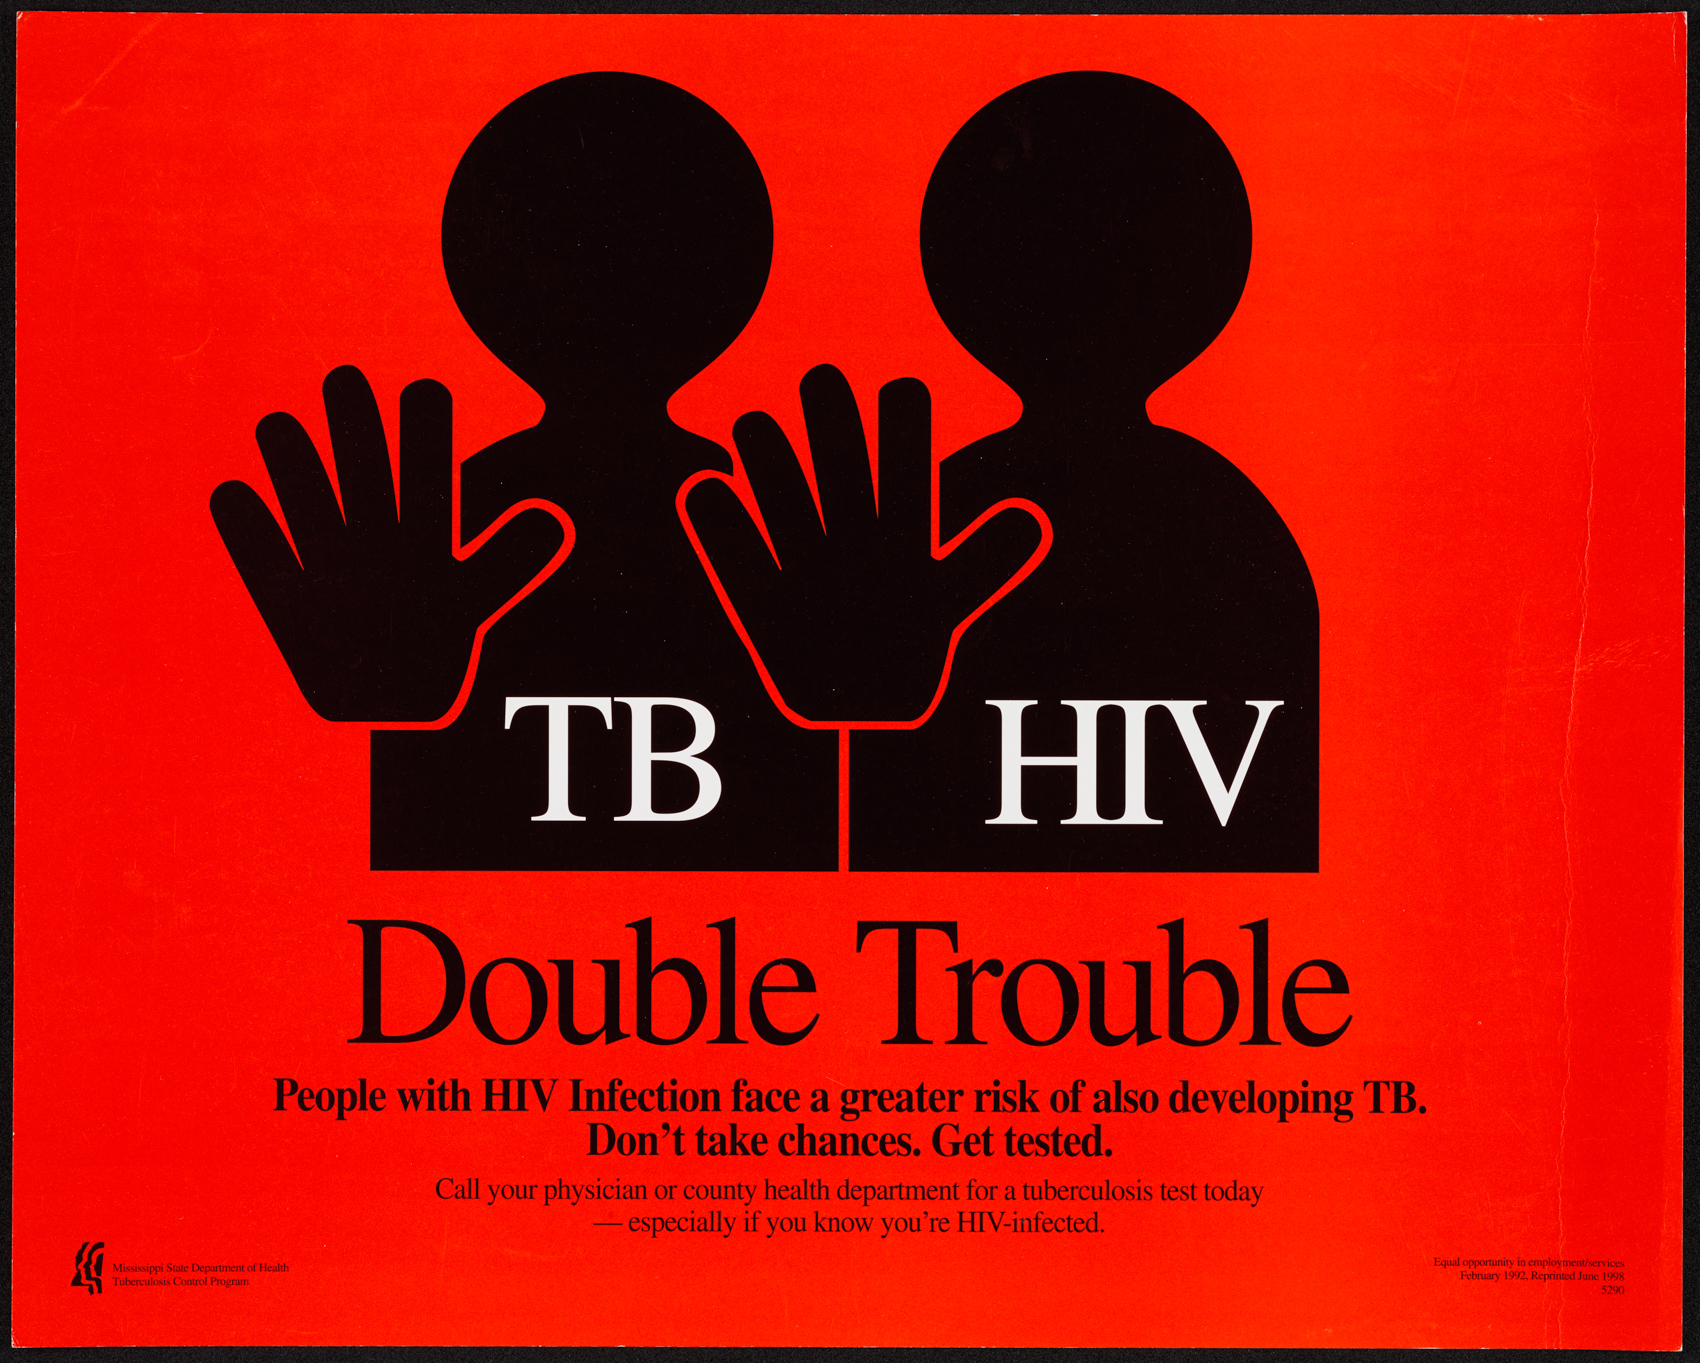 tb hiv Mycobacterium tuberculosis and human immunodeficiency virus are both diseases that plague many developing countries in fact, individuals living with hiv are 12-20 times more likely to develop tuberculosis [].